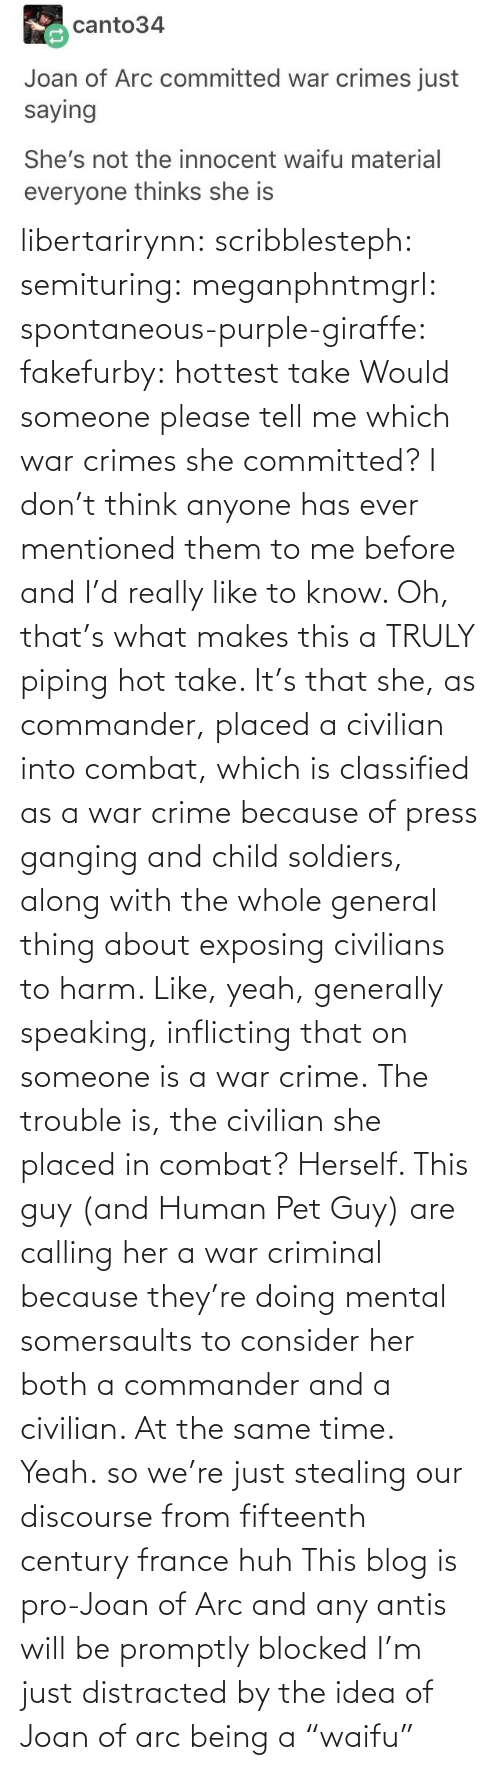 "her: libertarirynn: scribblesteph:  semituring:  meganphntmgrl:  spontaneous-purple-giraffe:   fakefurby: hottest take  Would someone please tell me which war crimes she committed? I don't think anyone has ever mentioned them to me before and I'd really like to know.    Oh, that's what makes this a TRULY piping hot take. It's that she, as commander, placed a civilian into combat, which is classified as a war crime because of press ganging and child soldiers, along with the whole general thing about exposing civilians to harm. Like, yeah, generally speaking, inflicting that on someone is a war crime. The trouble is, the civilian she placed in combat? Herself.  This guy (and Human Pet Guy) are calling her a war criminal because they're doing mental somersaults to consider her both a commander and a civilian. At the same time.  Yeah.  so we're just stealing our discourse from fifteenth century france huh   This blog is pro-Joan of Arc and any antis will be promptly blocked   I'm just distracted by the idea of Joan of arc being a ""waifu"""